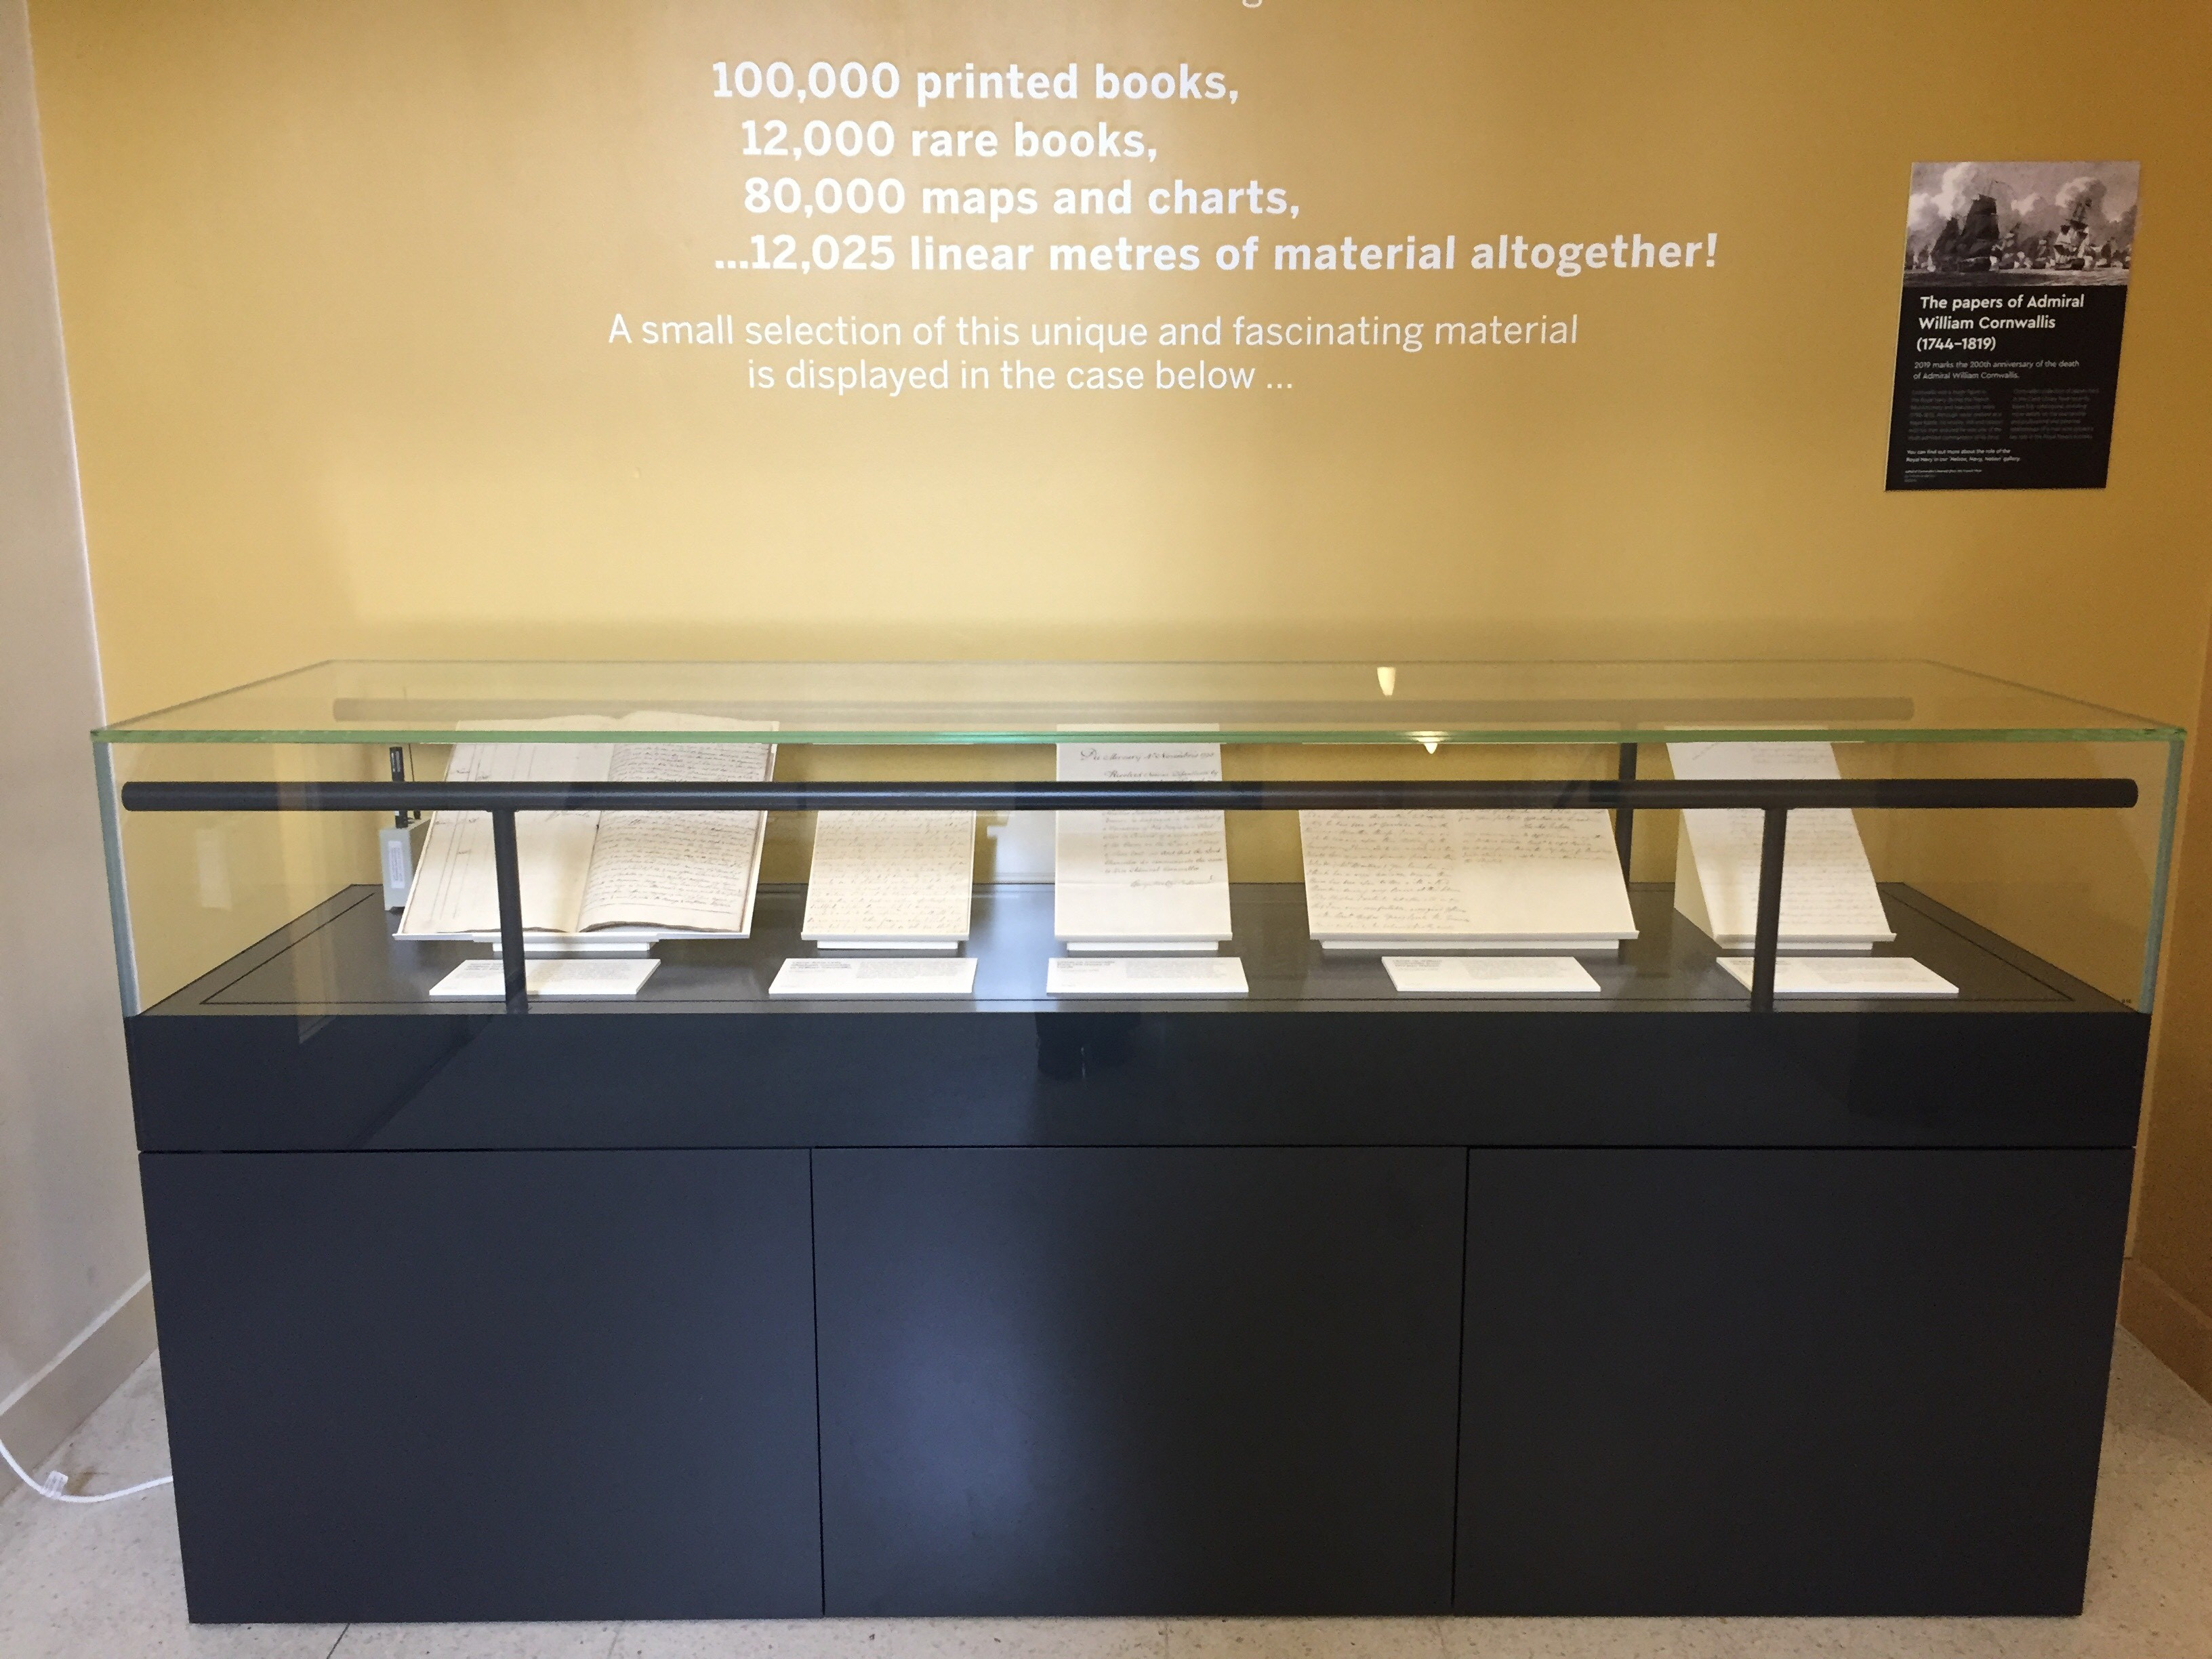 The Caird Library Display Case